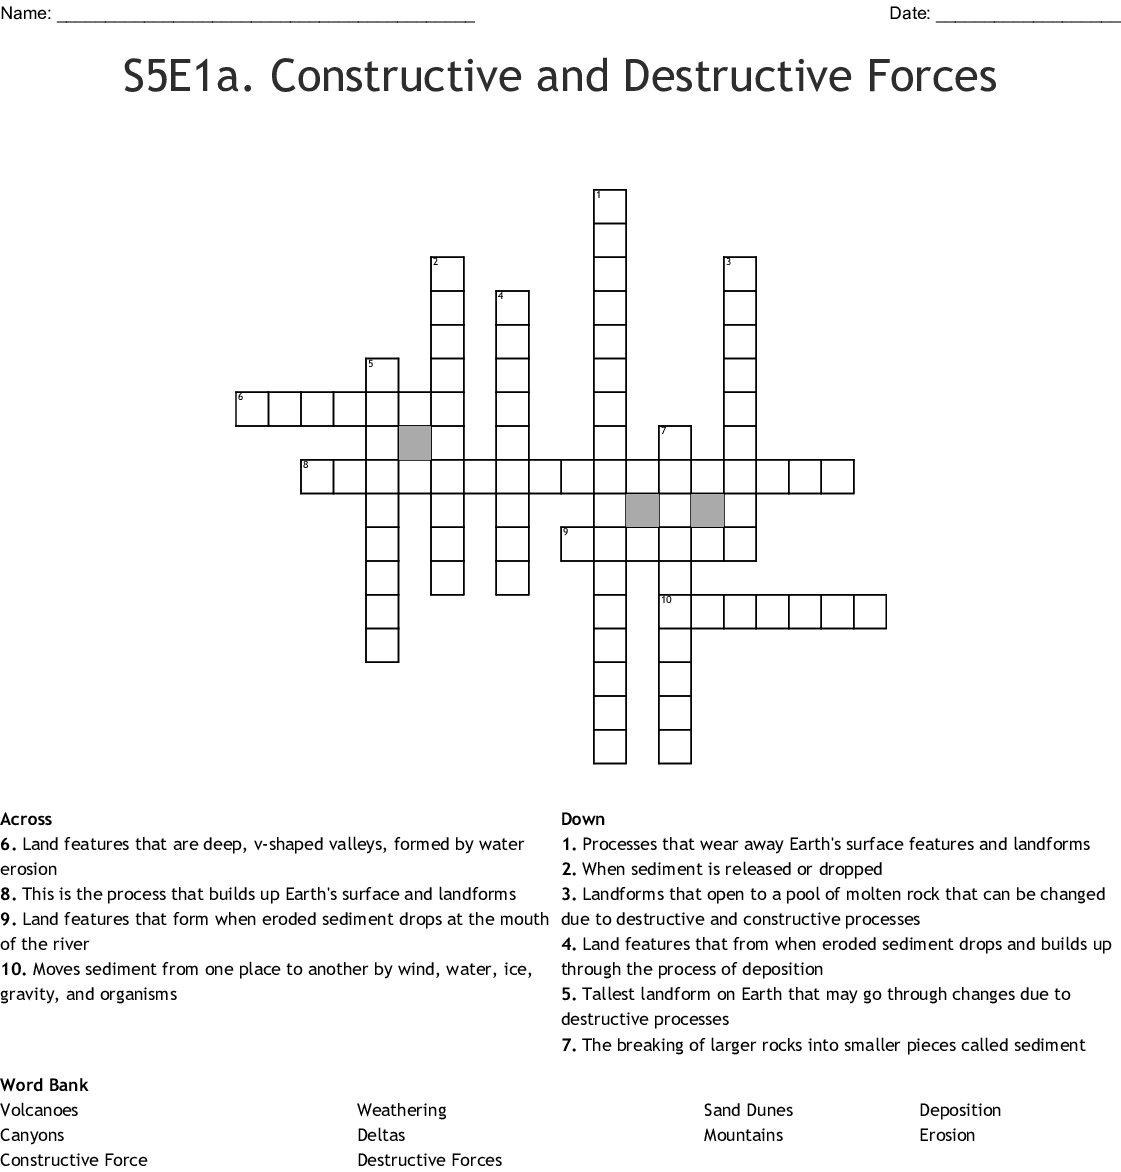 S5e1a Constructive And Destructive Forces Crossword